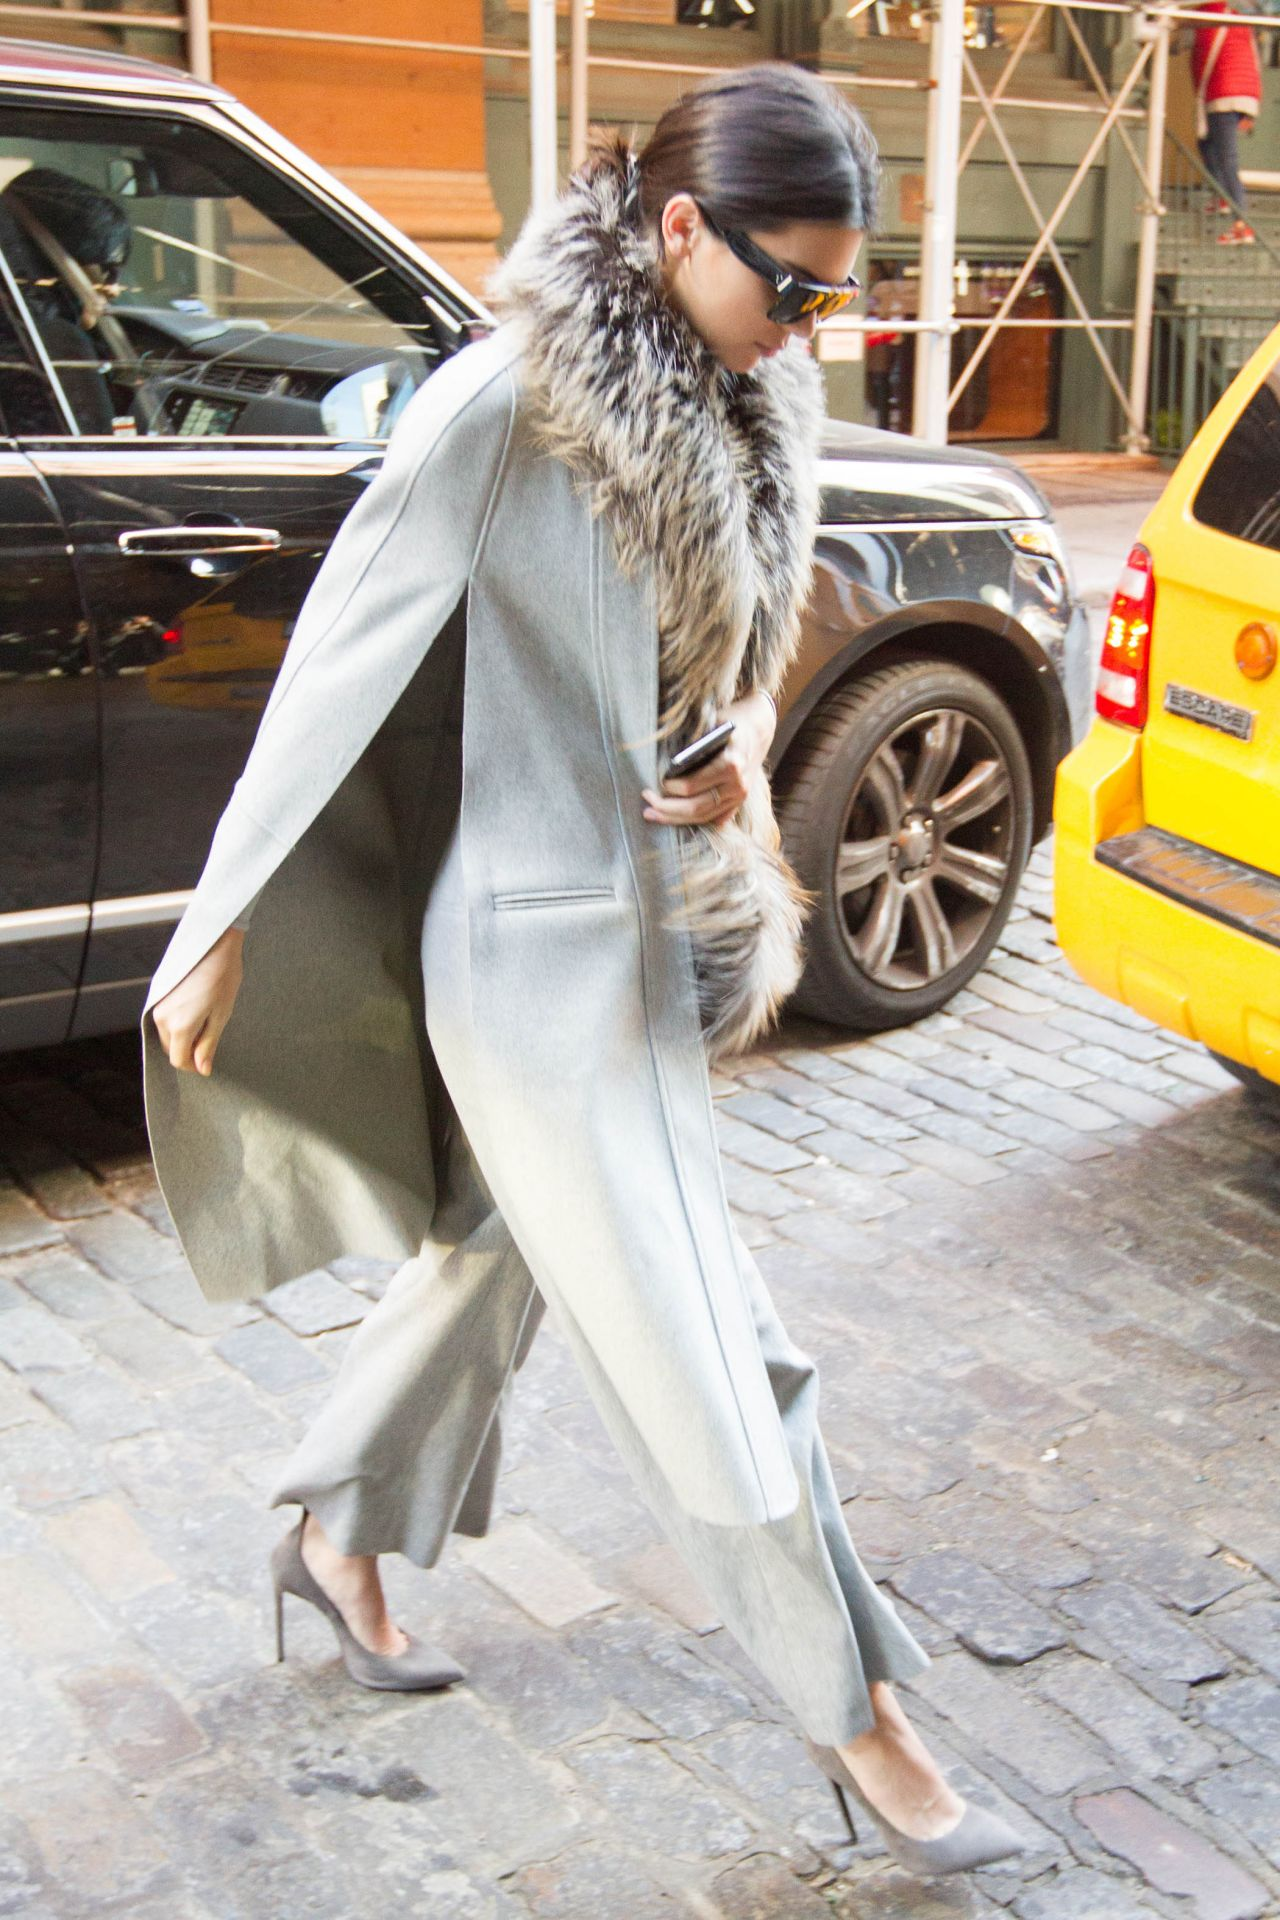 kendall-jenner-street-fashion-out-in-soho-nyc-october-2015_6